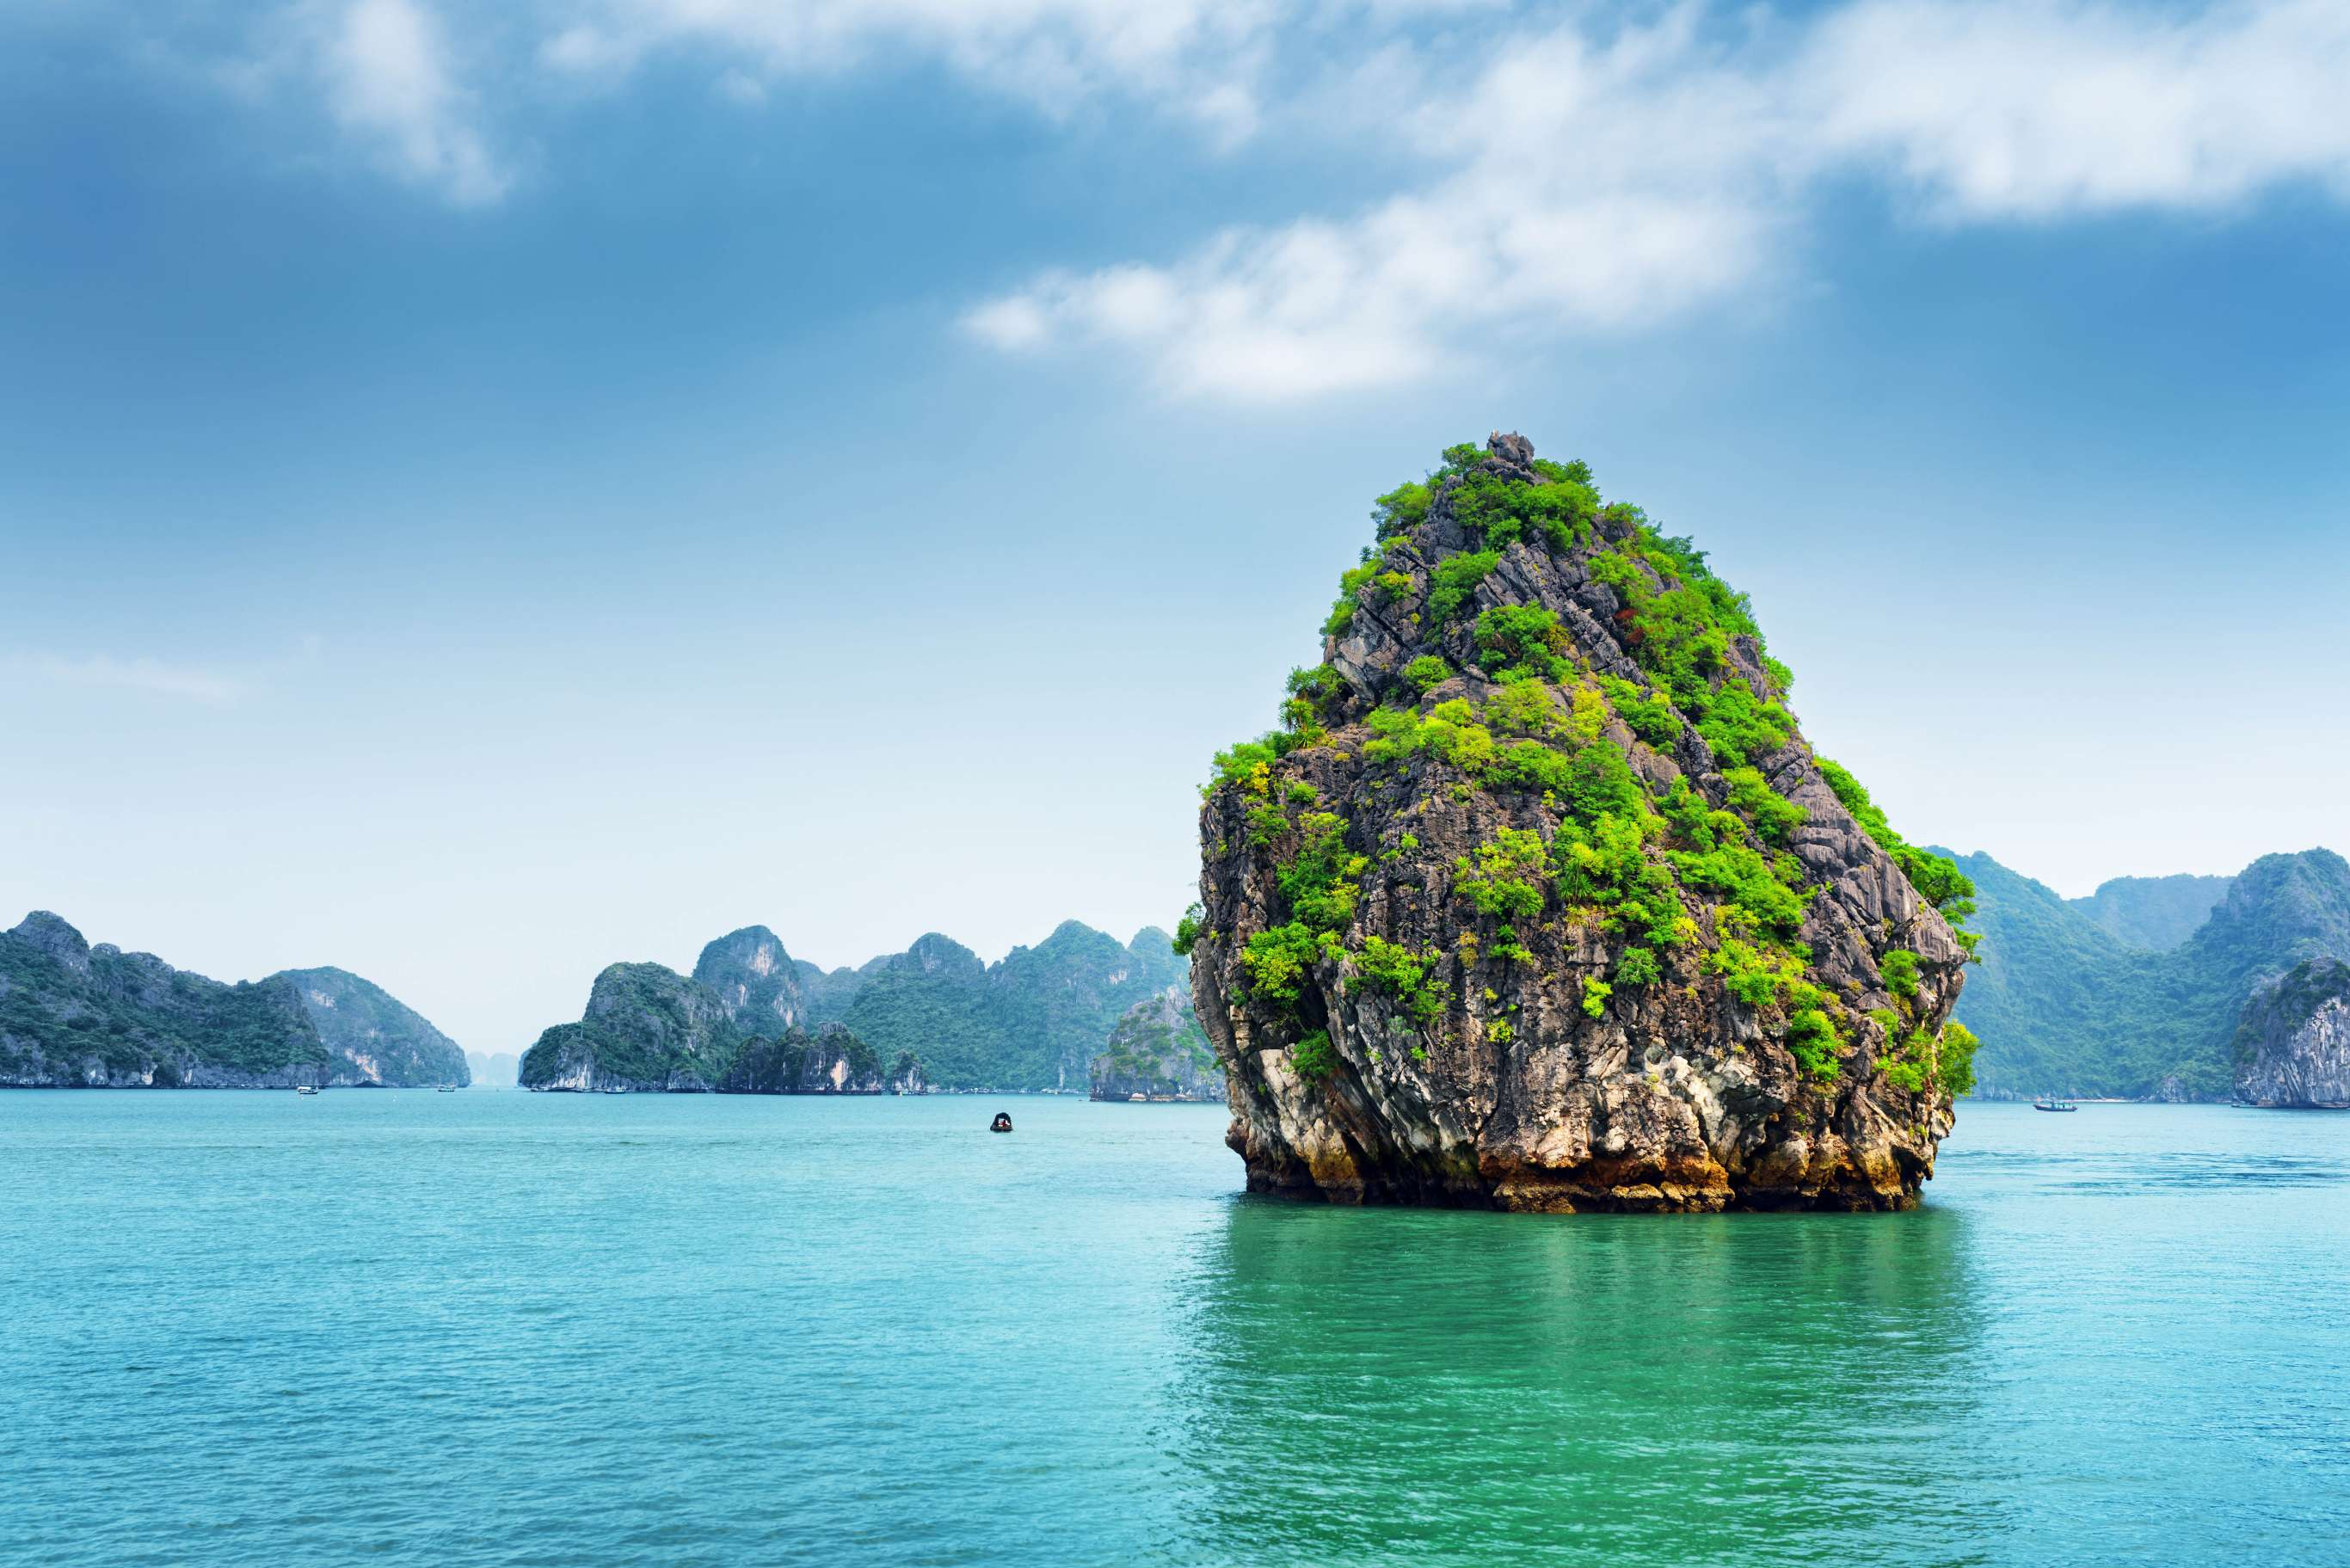 7-Day Northern Vietnam Scenic & Cultural Journey - Vietnam Itinerary